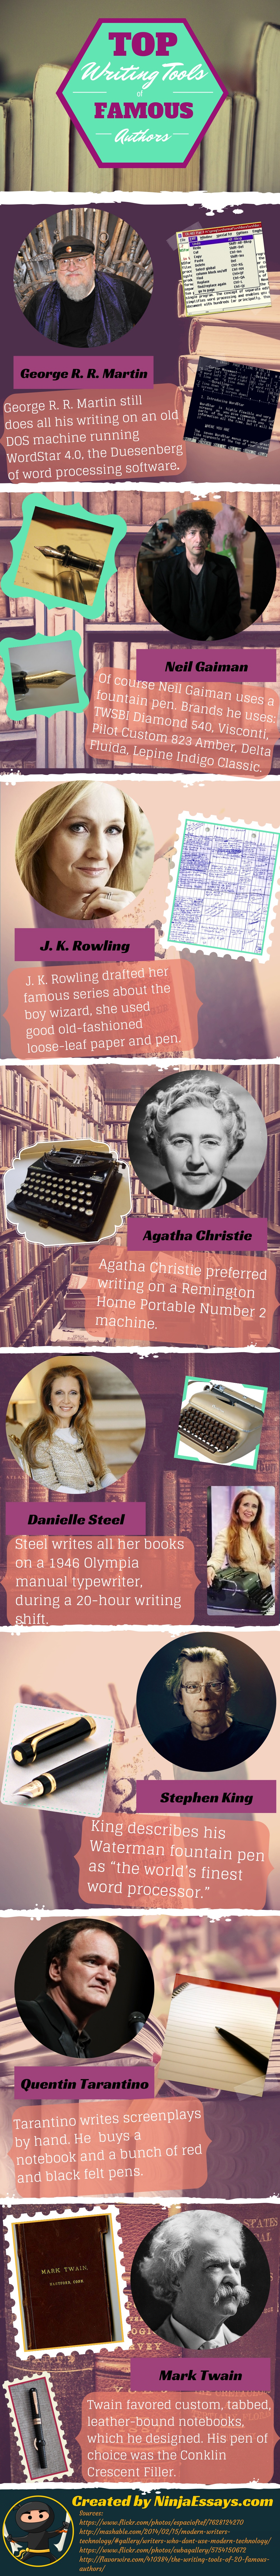 Top_Writing_Tools_of_Famous_Authors